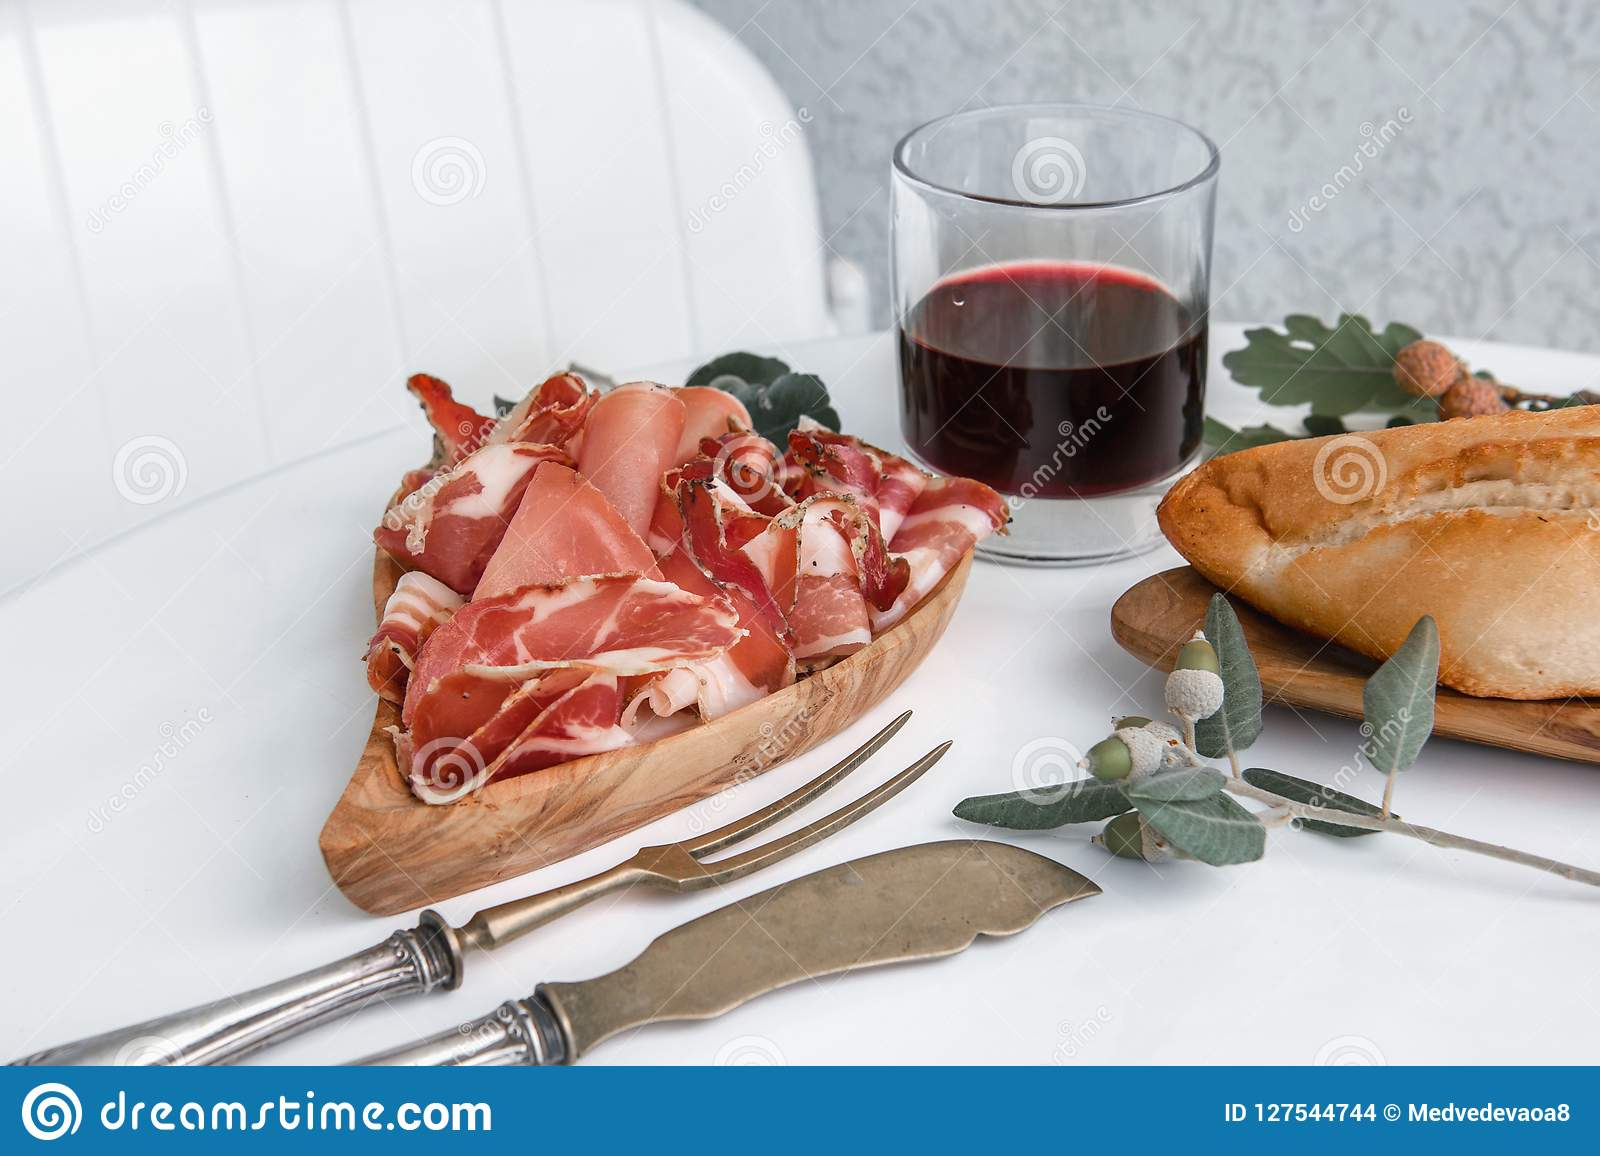 The aroma of ham and spices, thinly sliced on a white table with bread and antique Cutlery